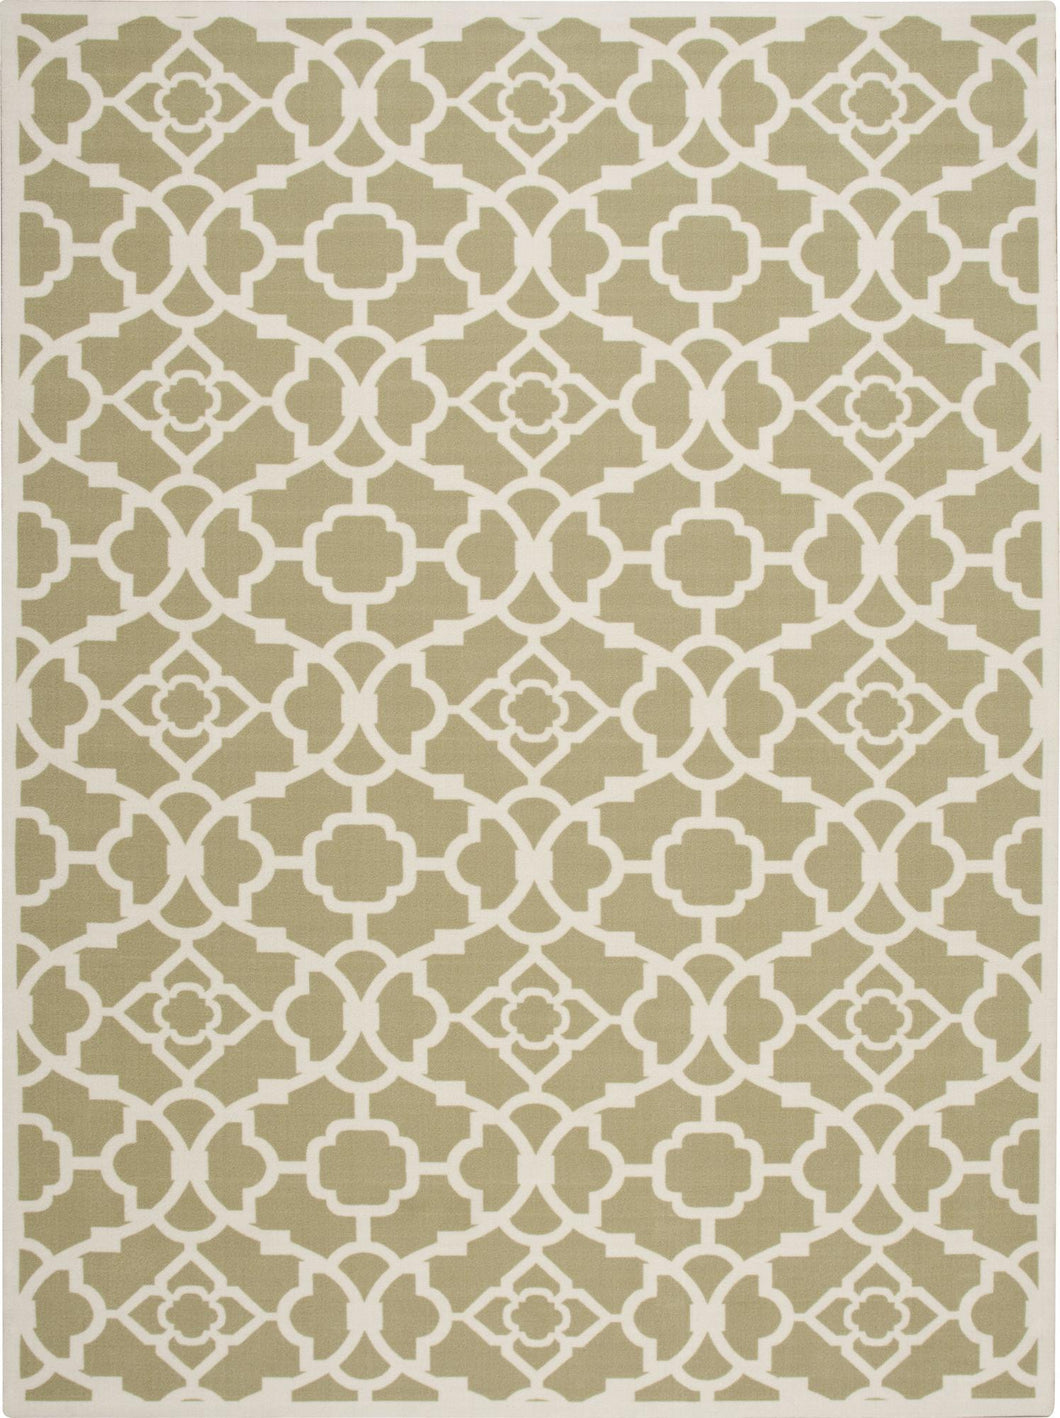 Waverly Sun & Shade Lovely Lattice Green Area Rug By Nourison SND04 GRE